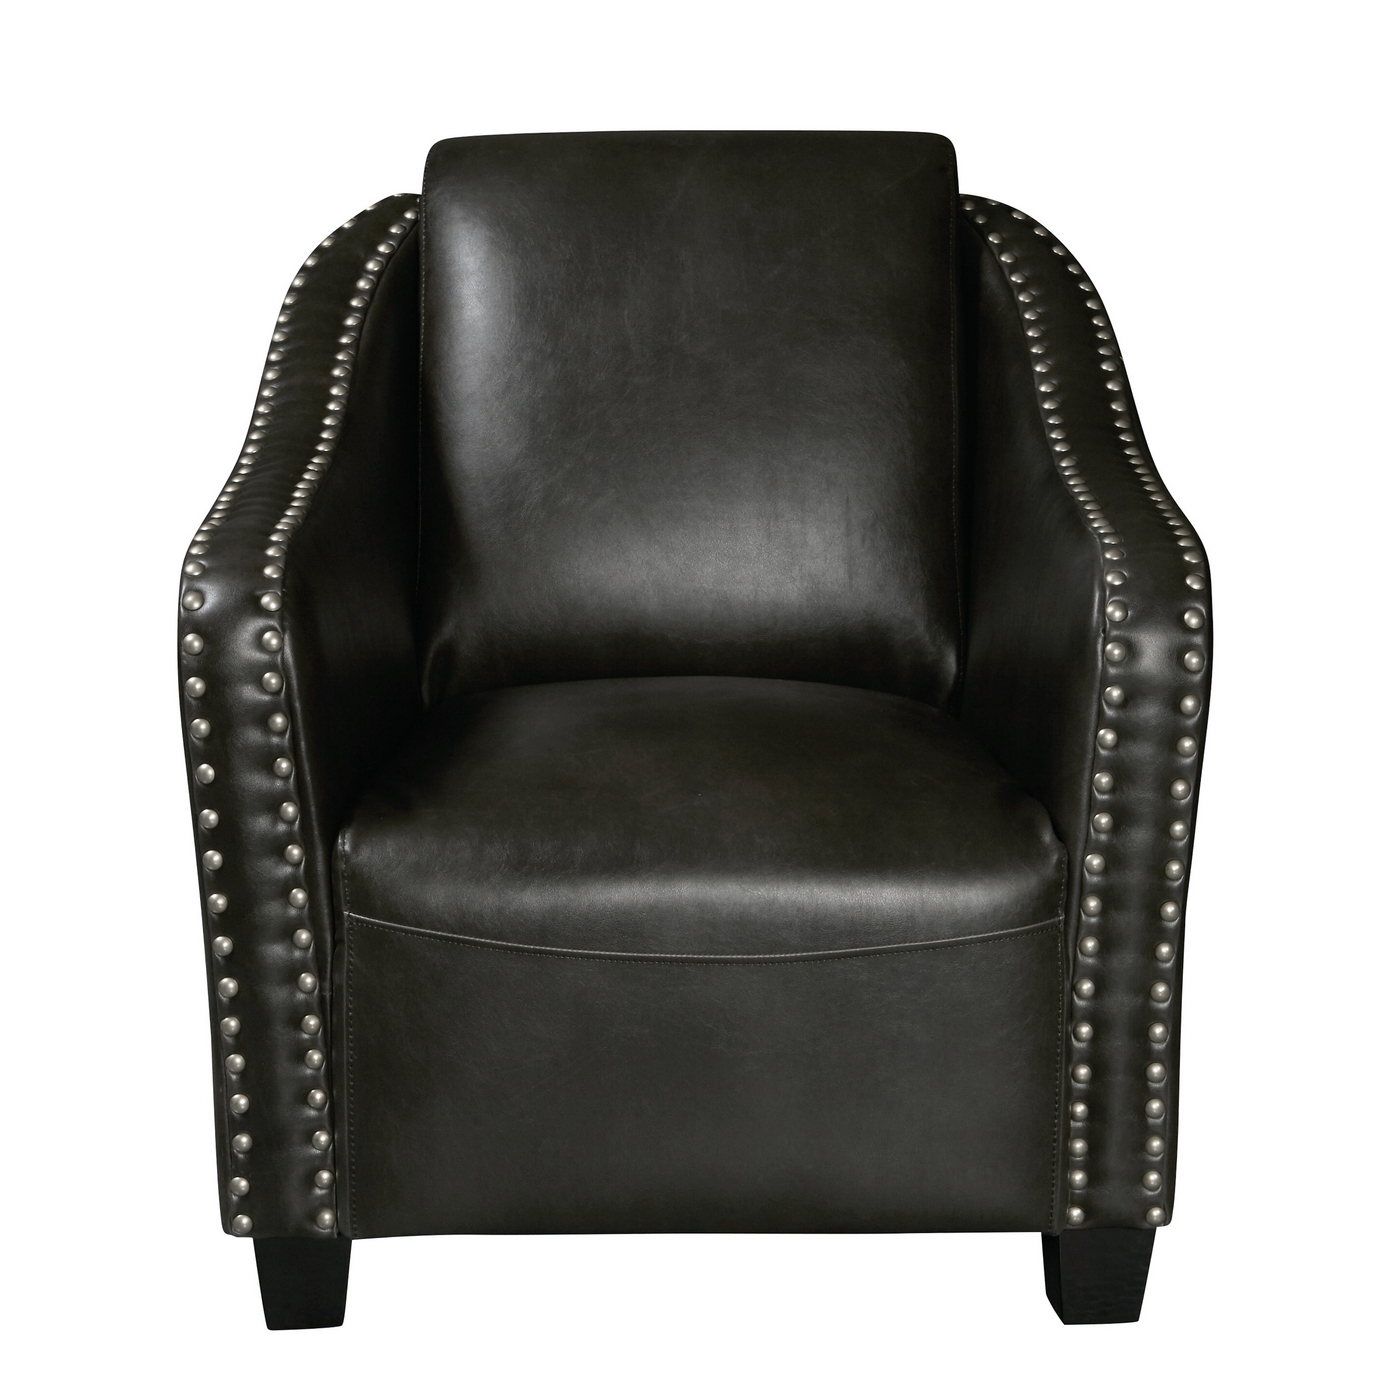 Superieur Details About Broadmoor Traditional Accent Club Chair W/ Nailhead Trim Dark  Grey Faux Leather